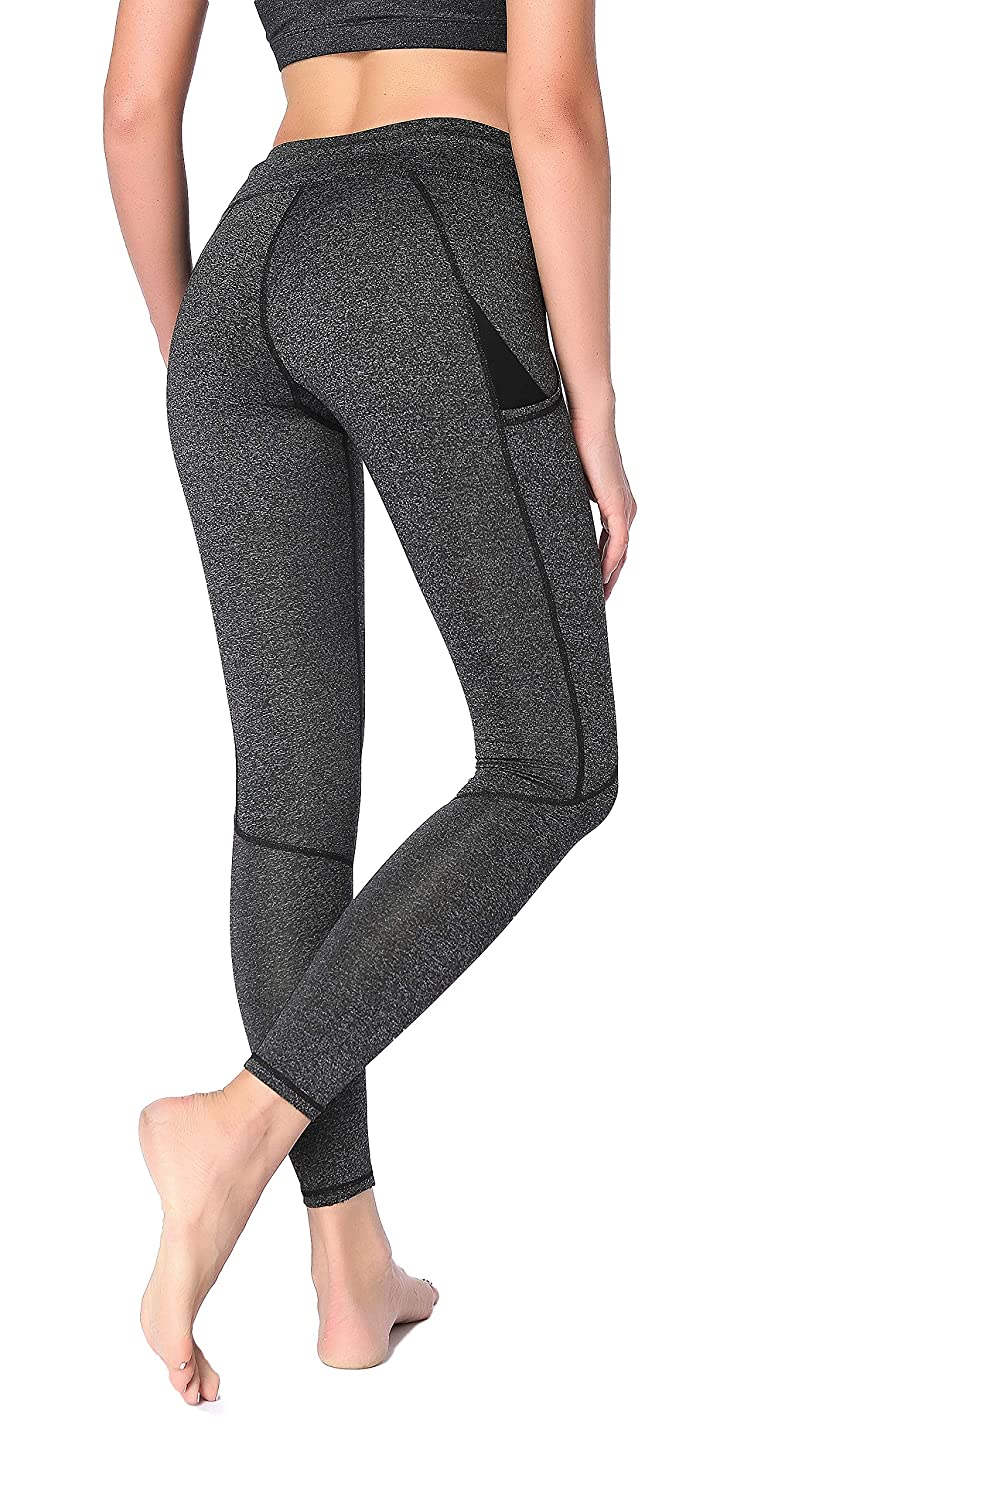 Grey Suoyugoo Women's Workout Yoga Pants Running Leggings Gym Tights 2 Side Pockets